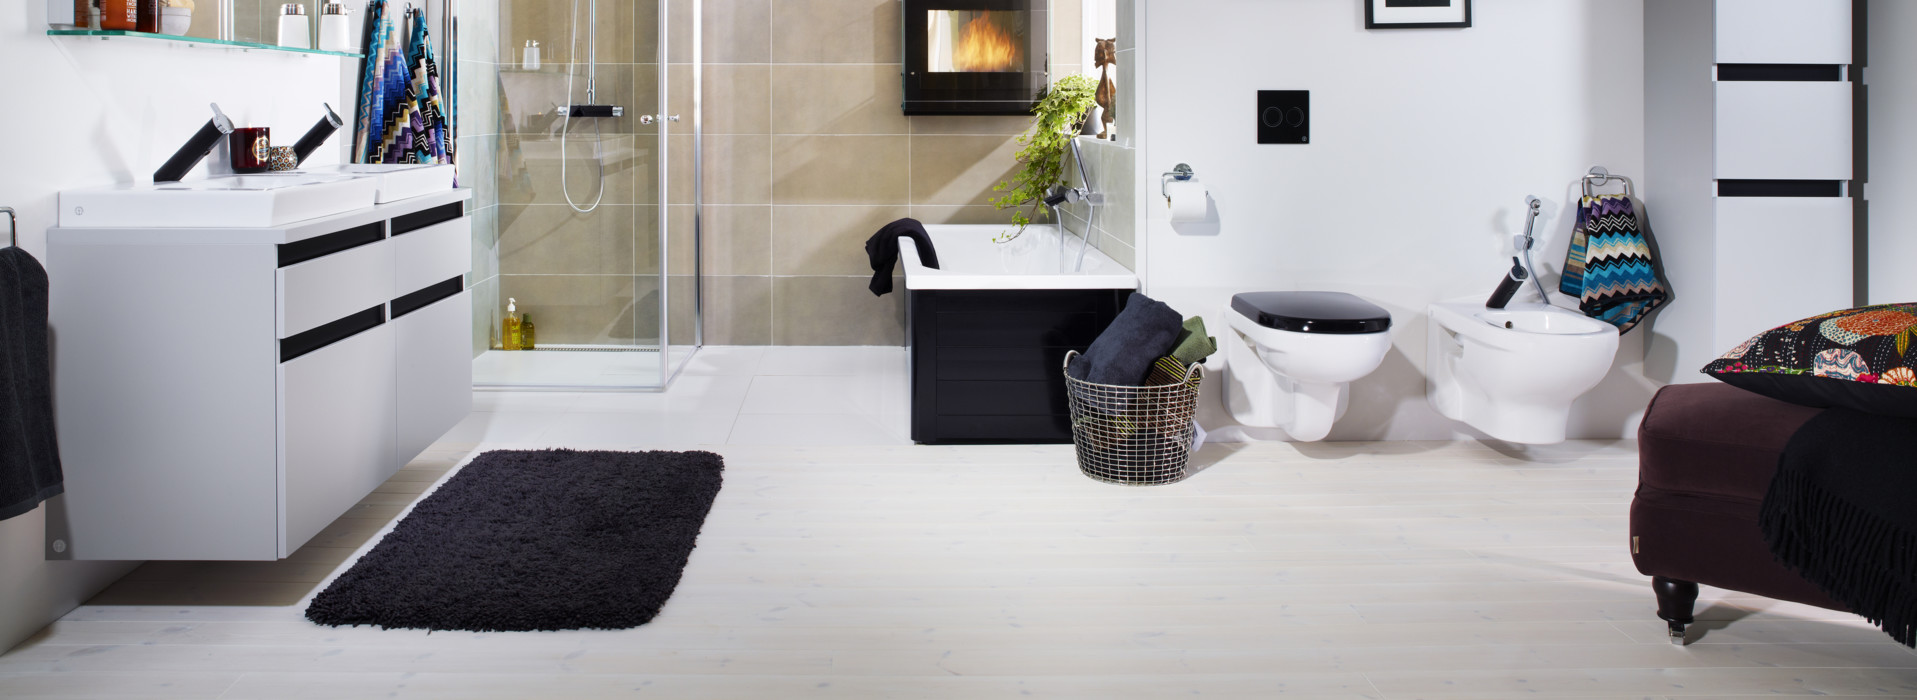 A large and spacious bathroom - Gustavsberg